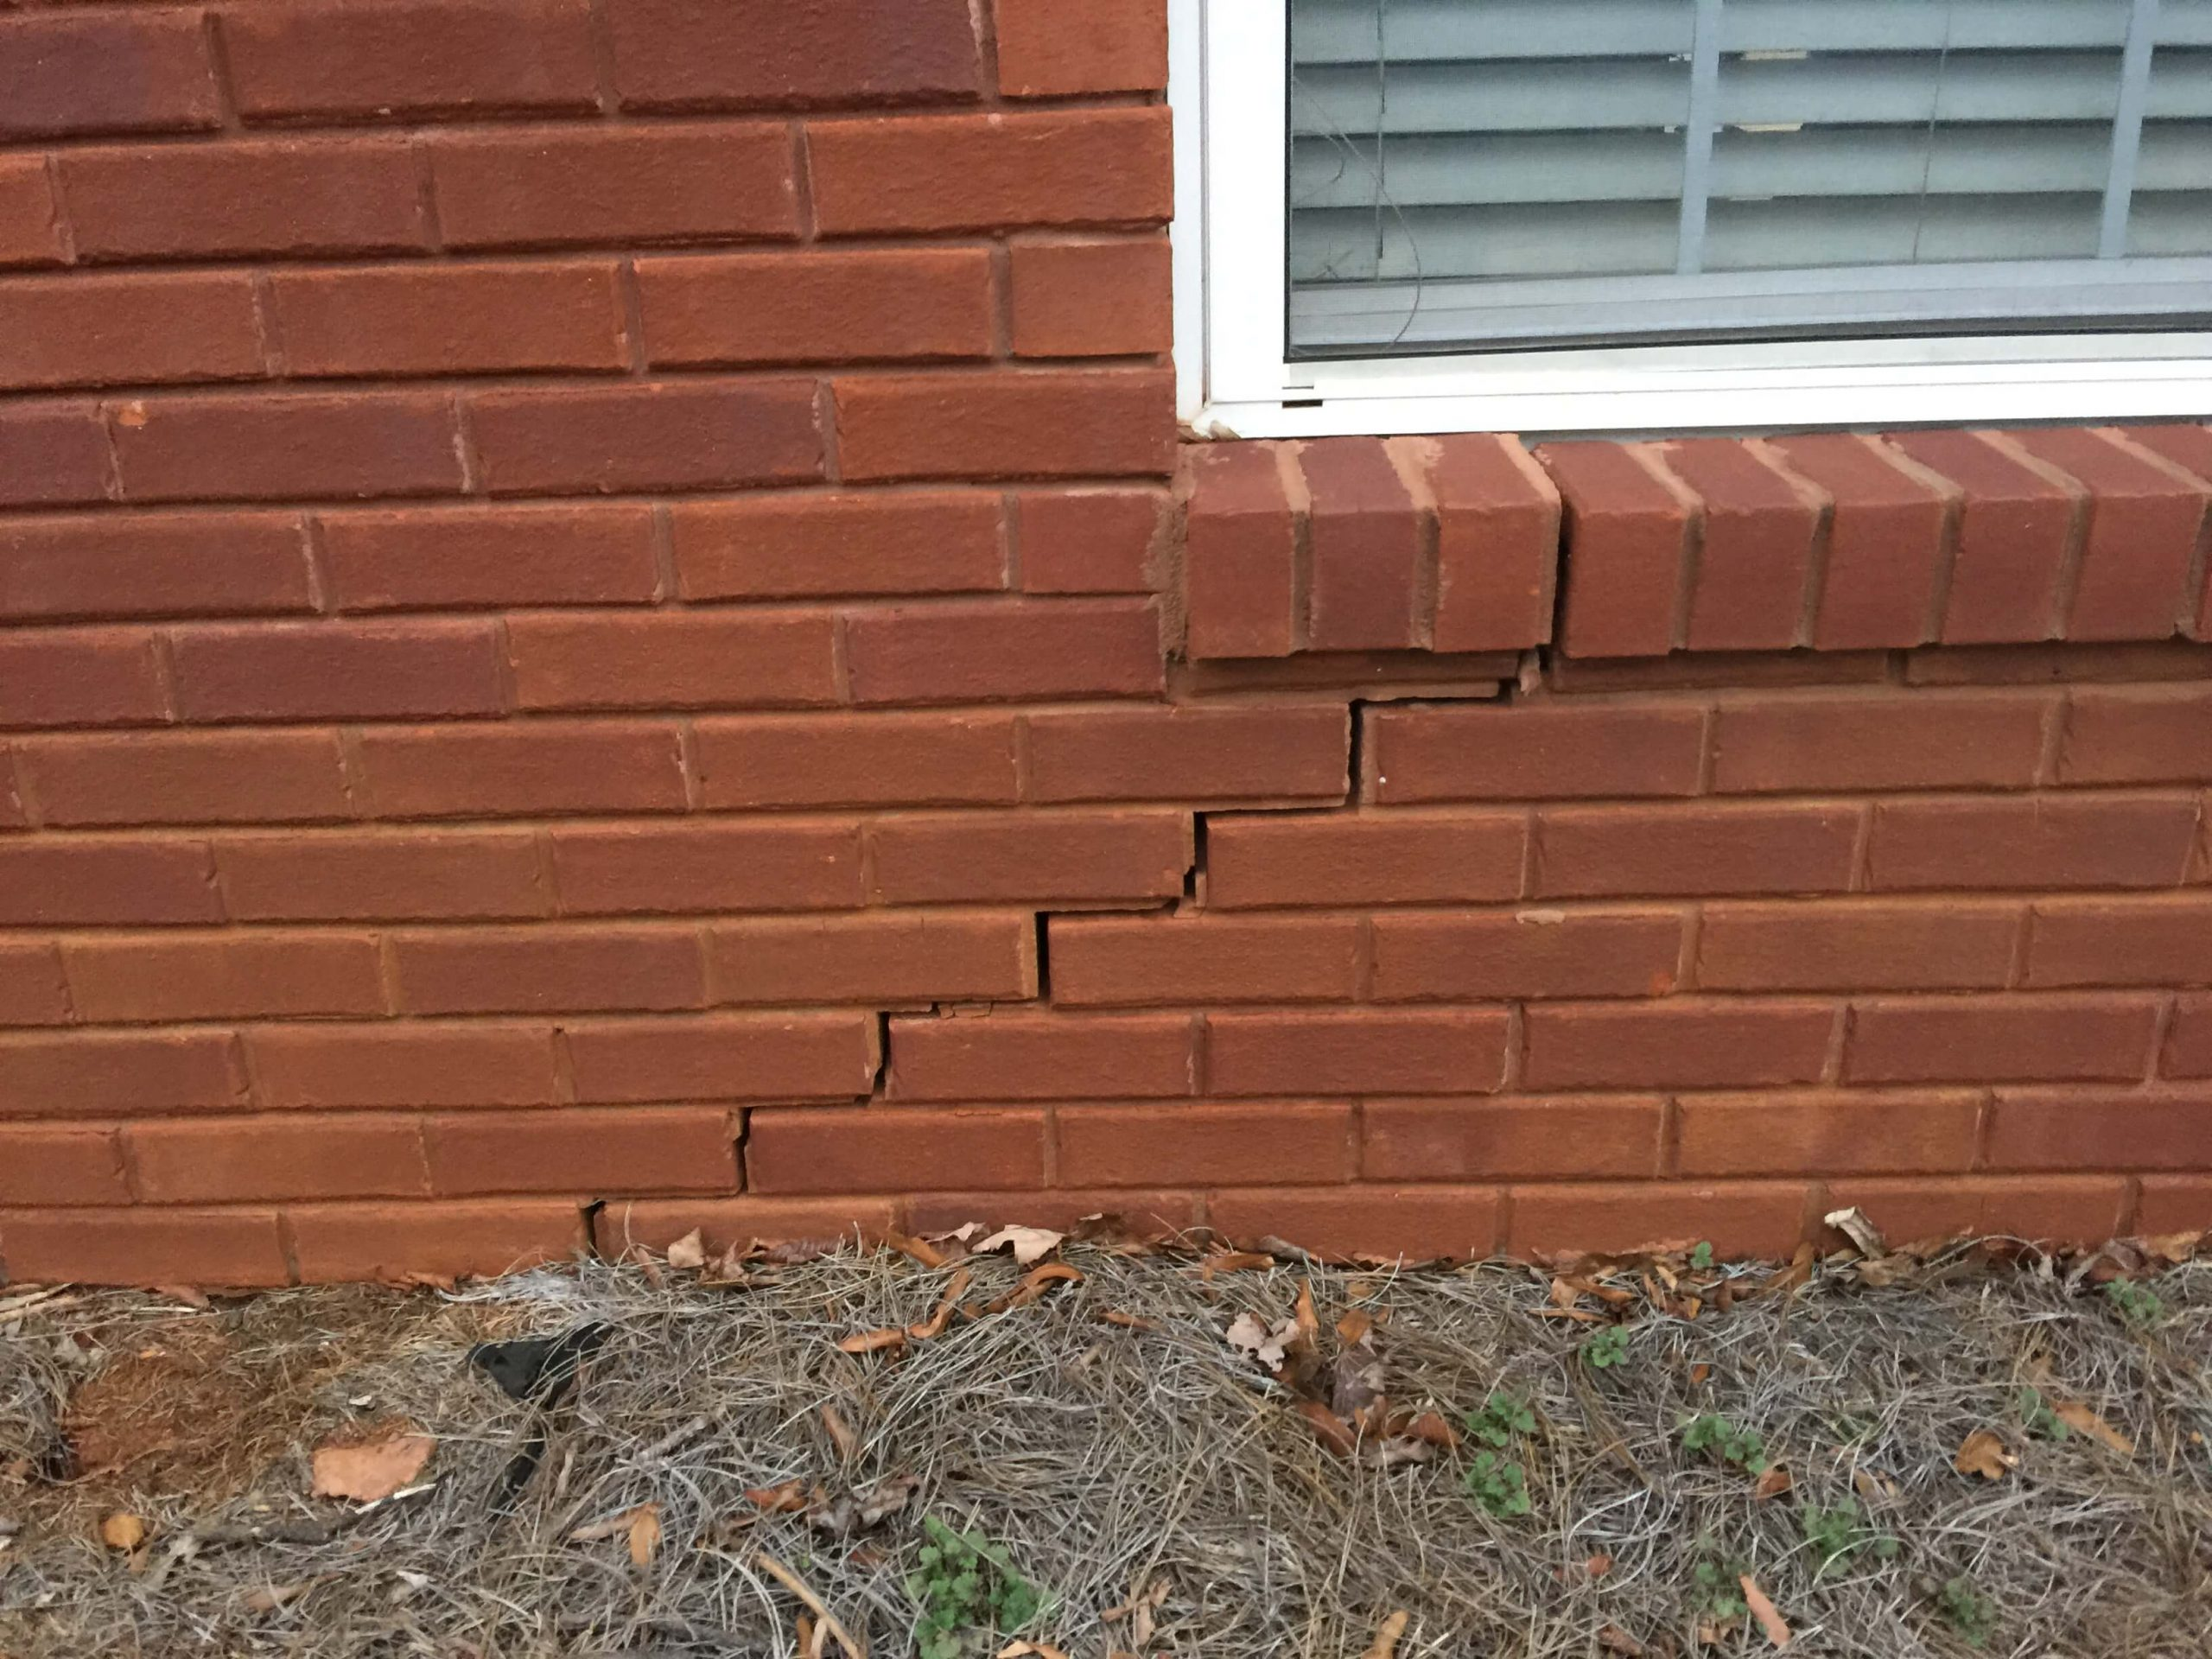 Stair Step Crack in Brick